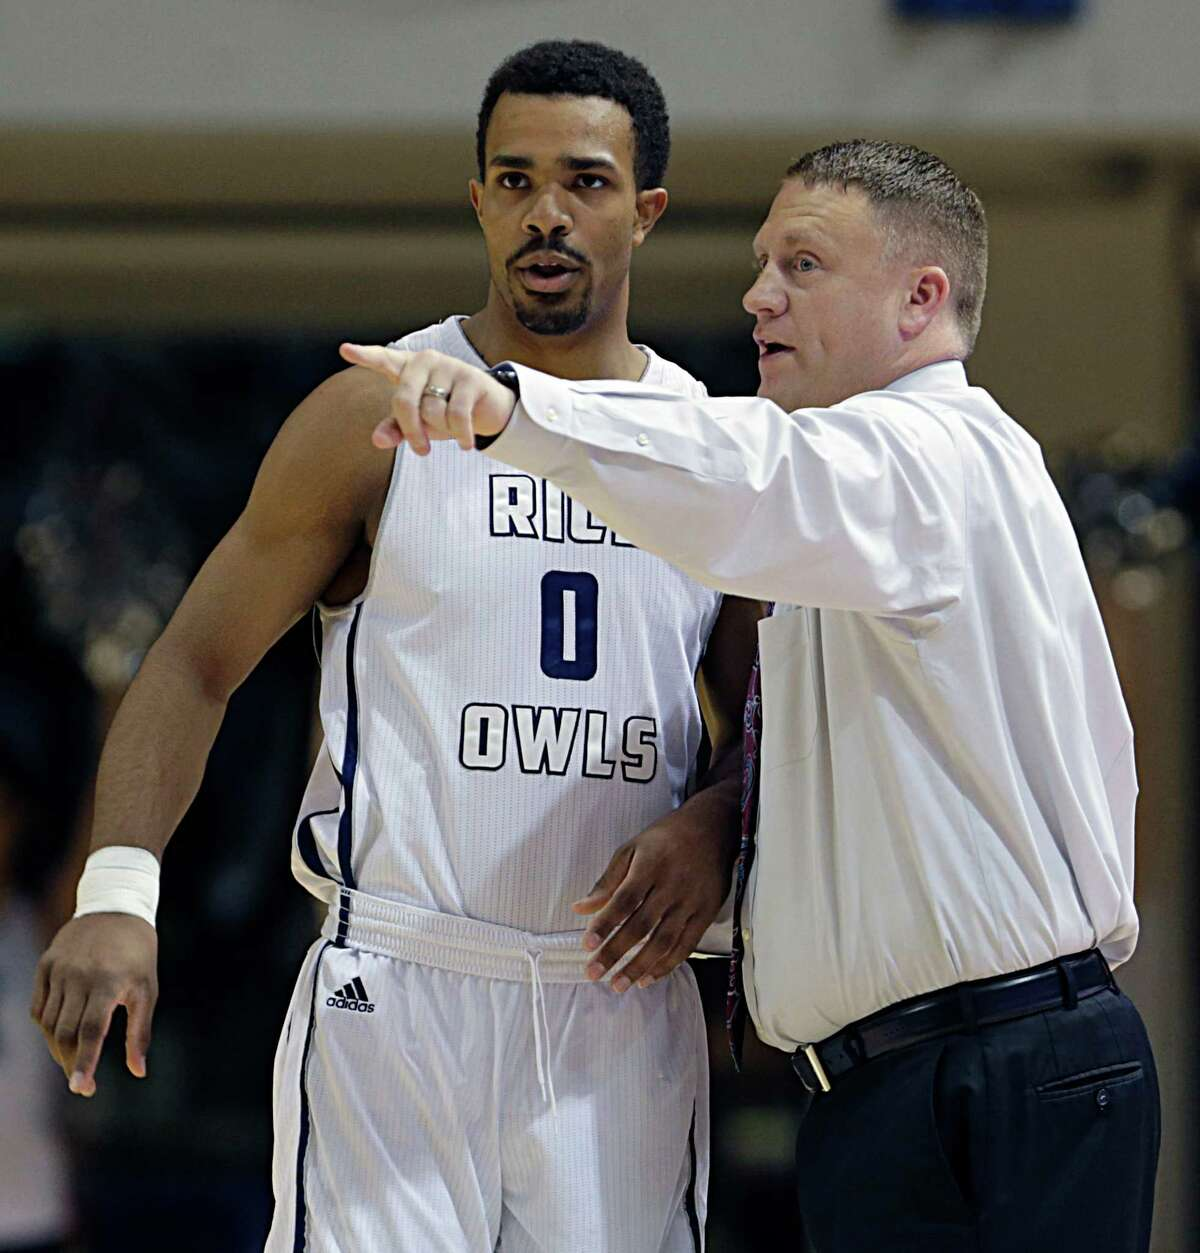 Rice guard Connor Cashaw left, and Rice head coach Mike Rhoades during the first half of men's college basketball game action against Houston Baptist at Tudor Fieldhouse Nov. 30, 2016, in Houston. ( James Nielsen / Houston Chronicle )